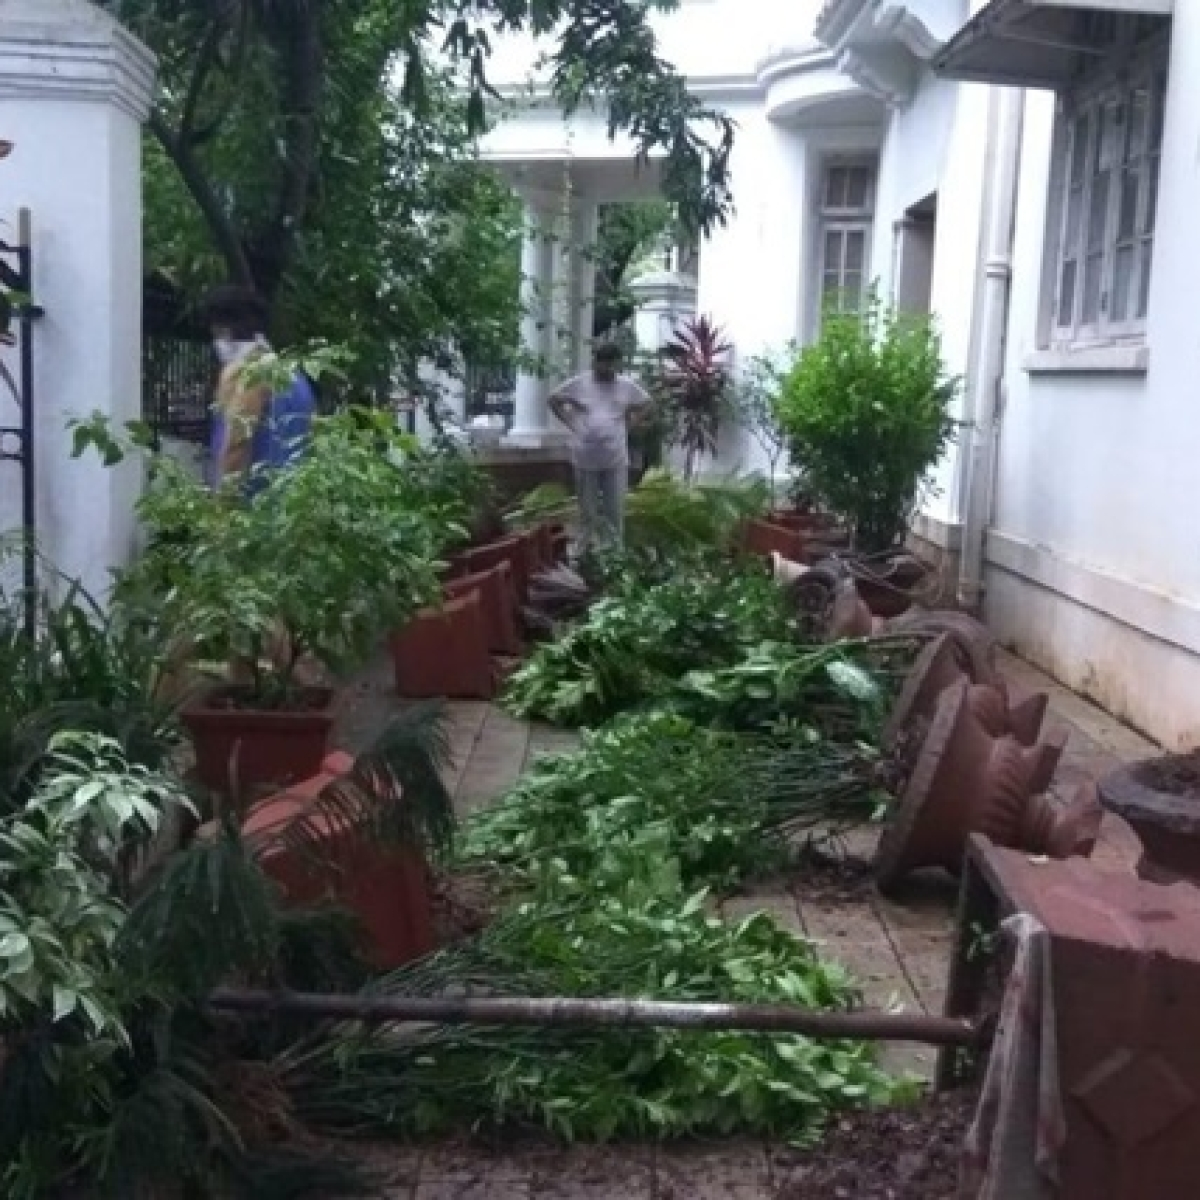 Dr BR Ambedkar's Mumbai residence 'Rajgruha' attacked by unidentified persons